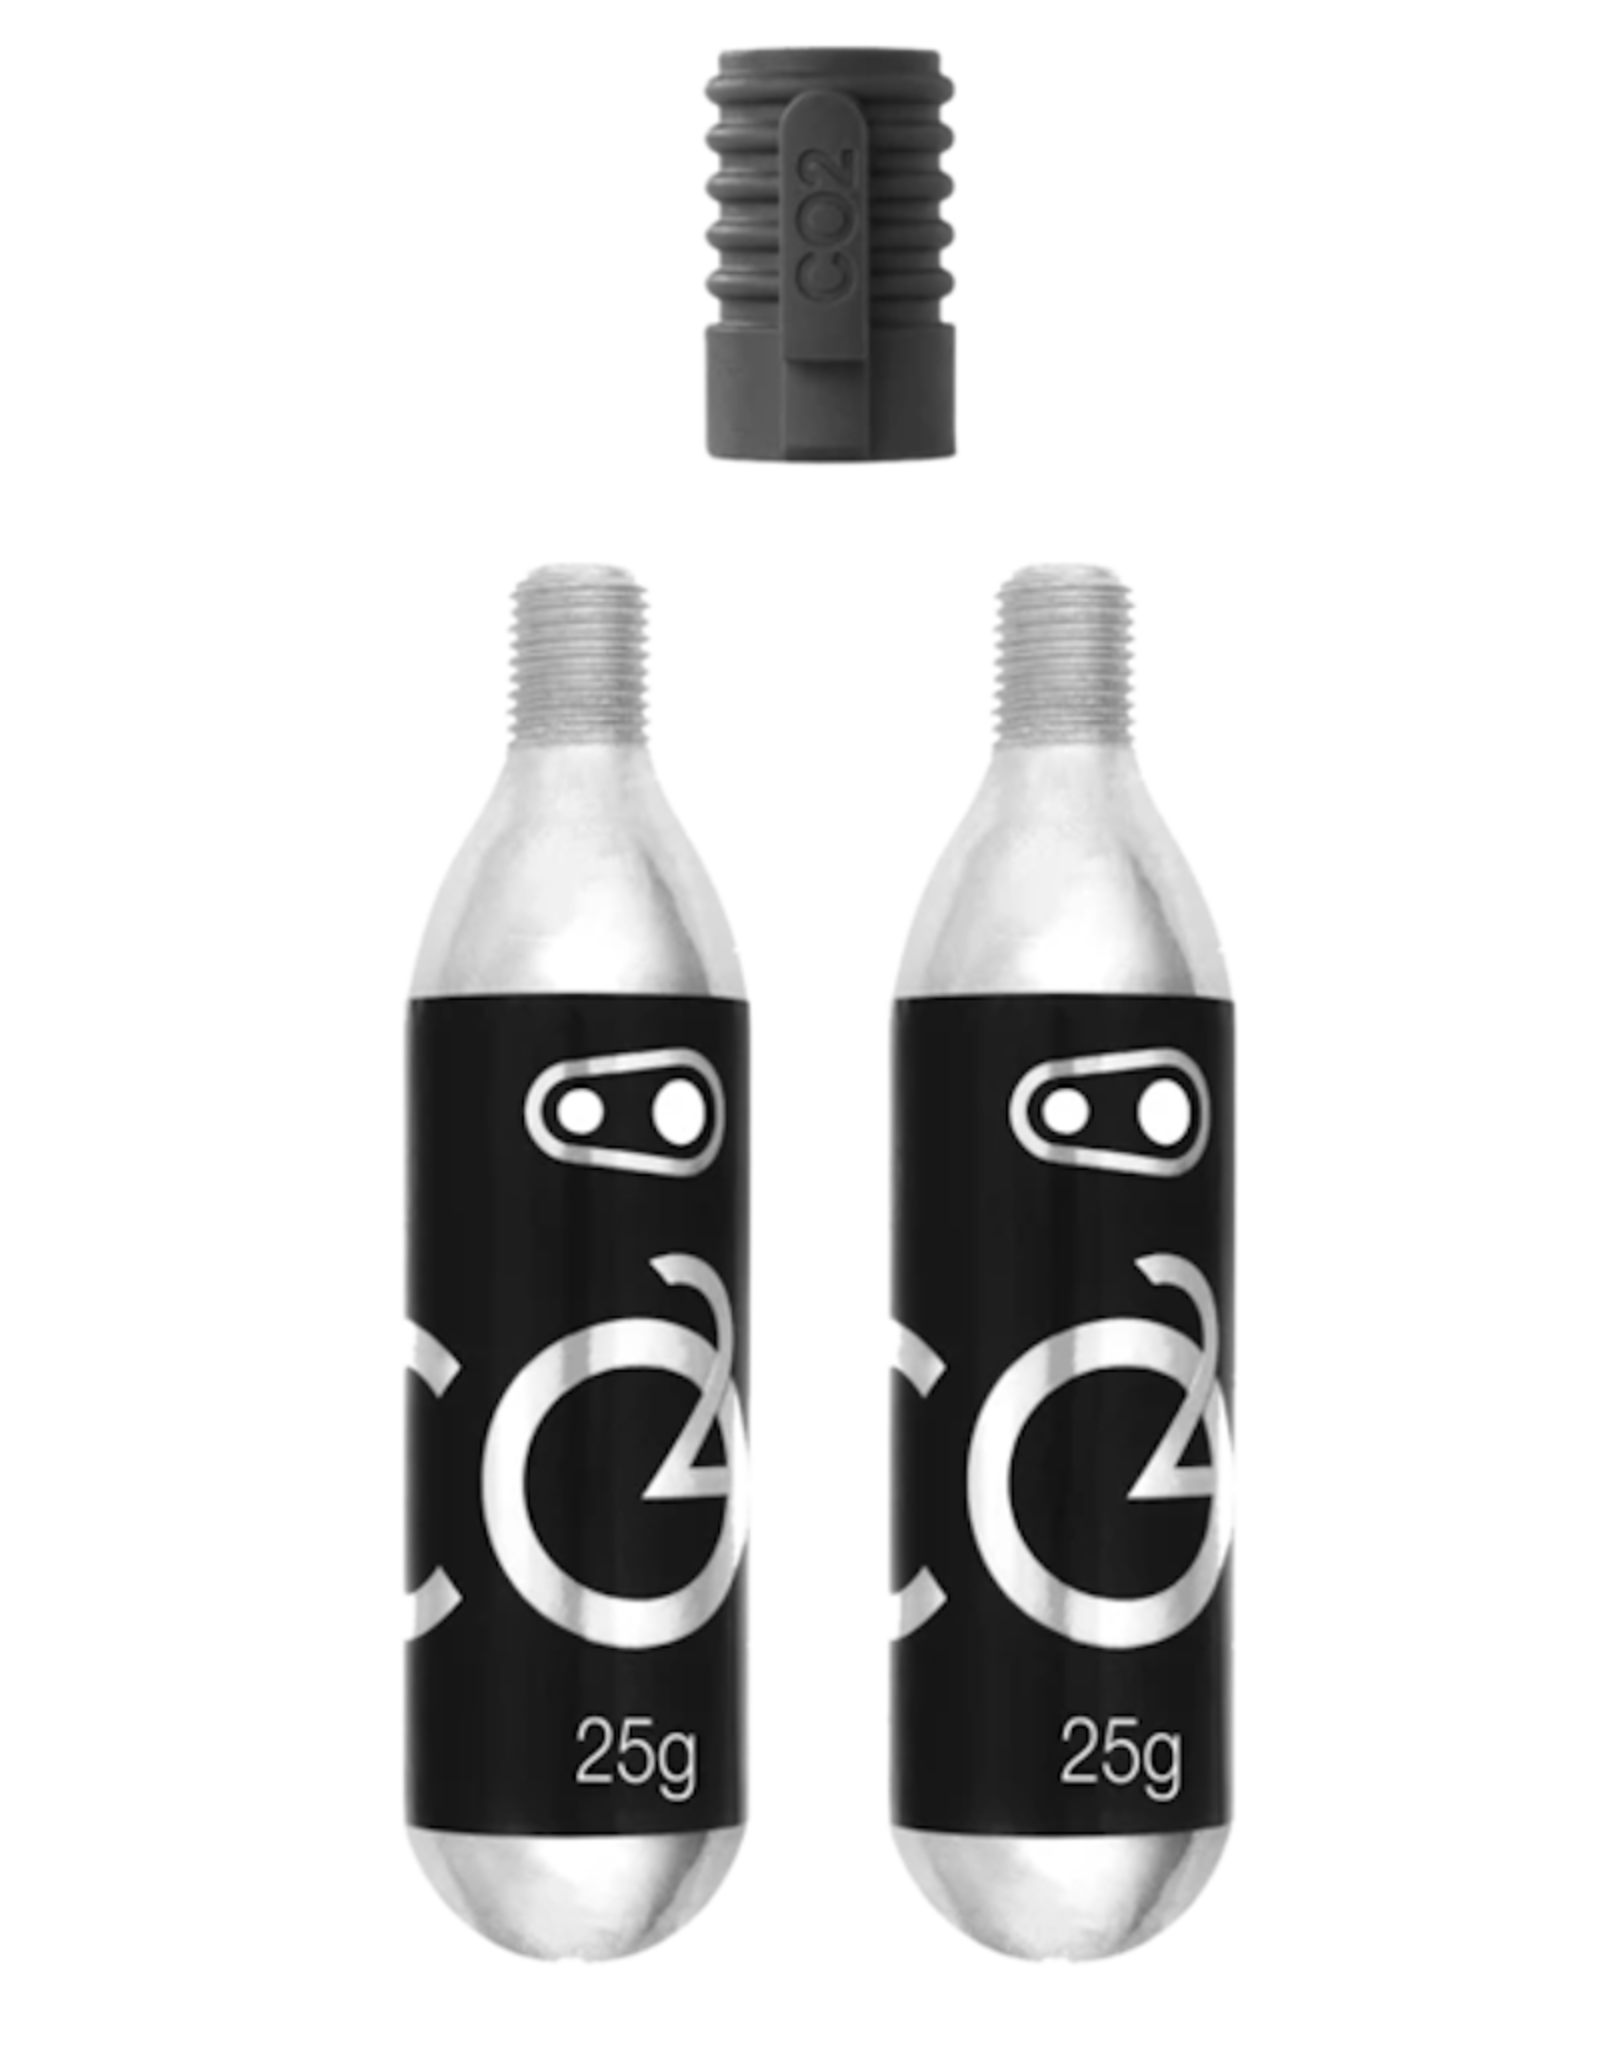 CRANK BROTHERS Crankbrothers - CO2 25G Cartridge (2 Units) with inflator